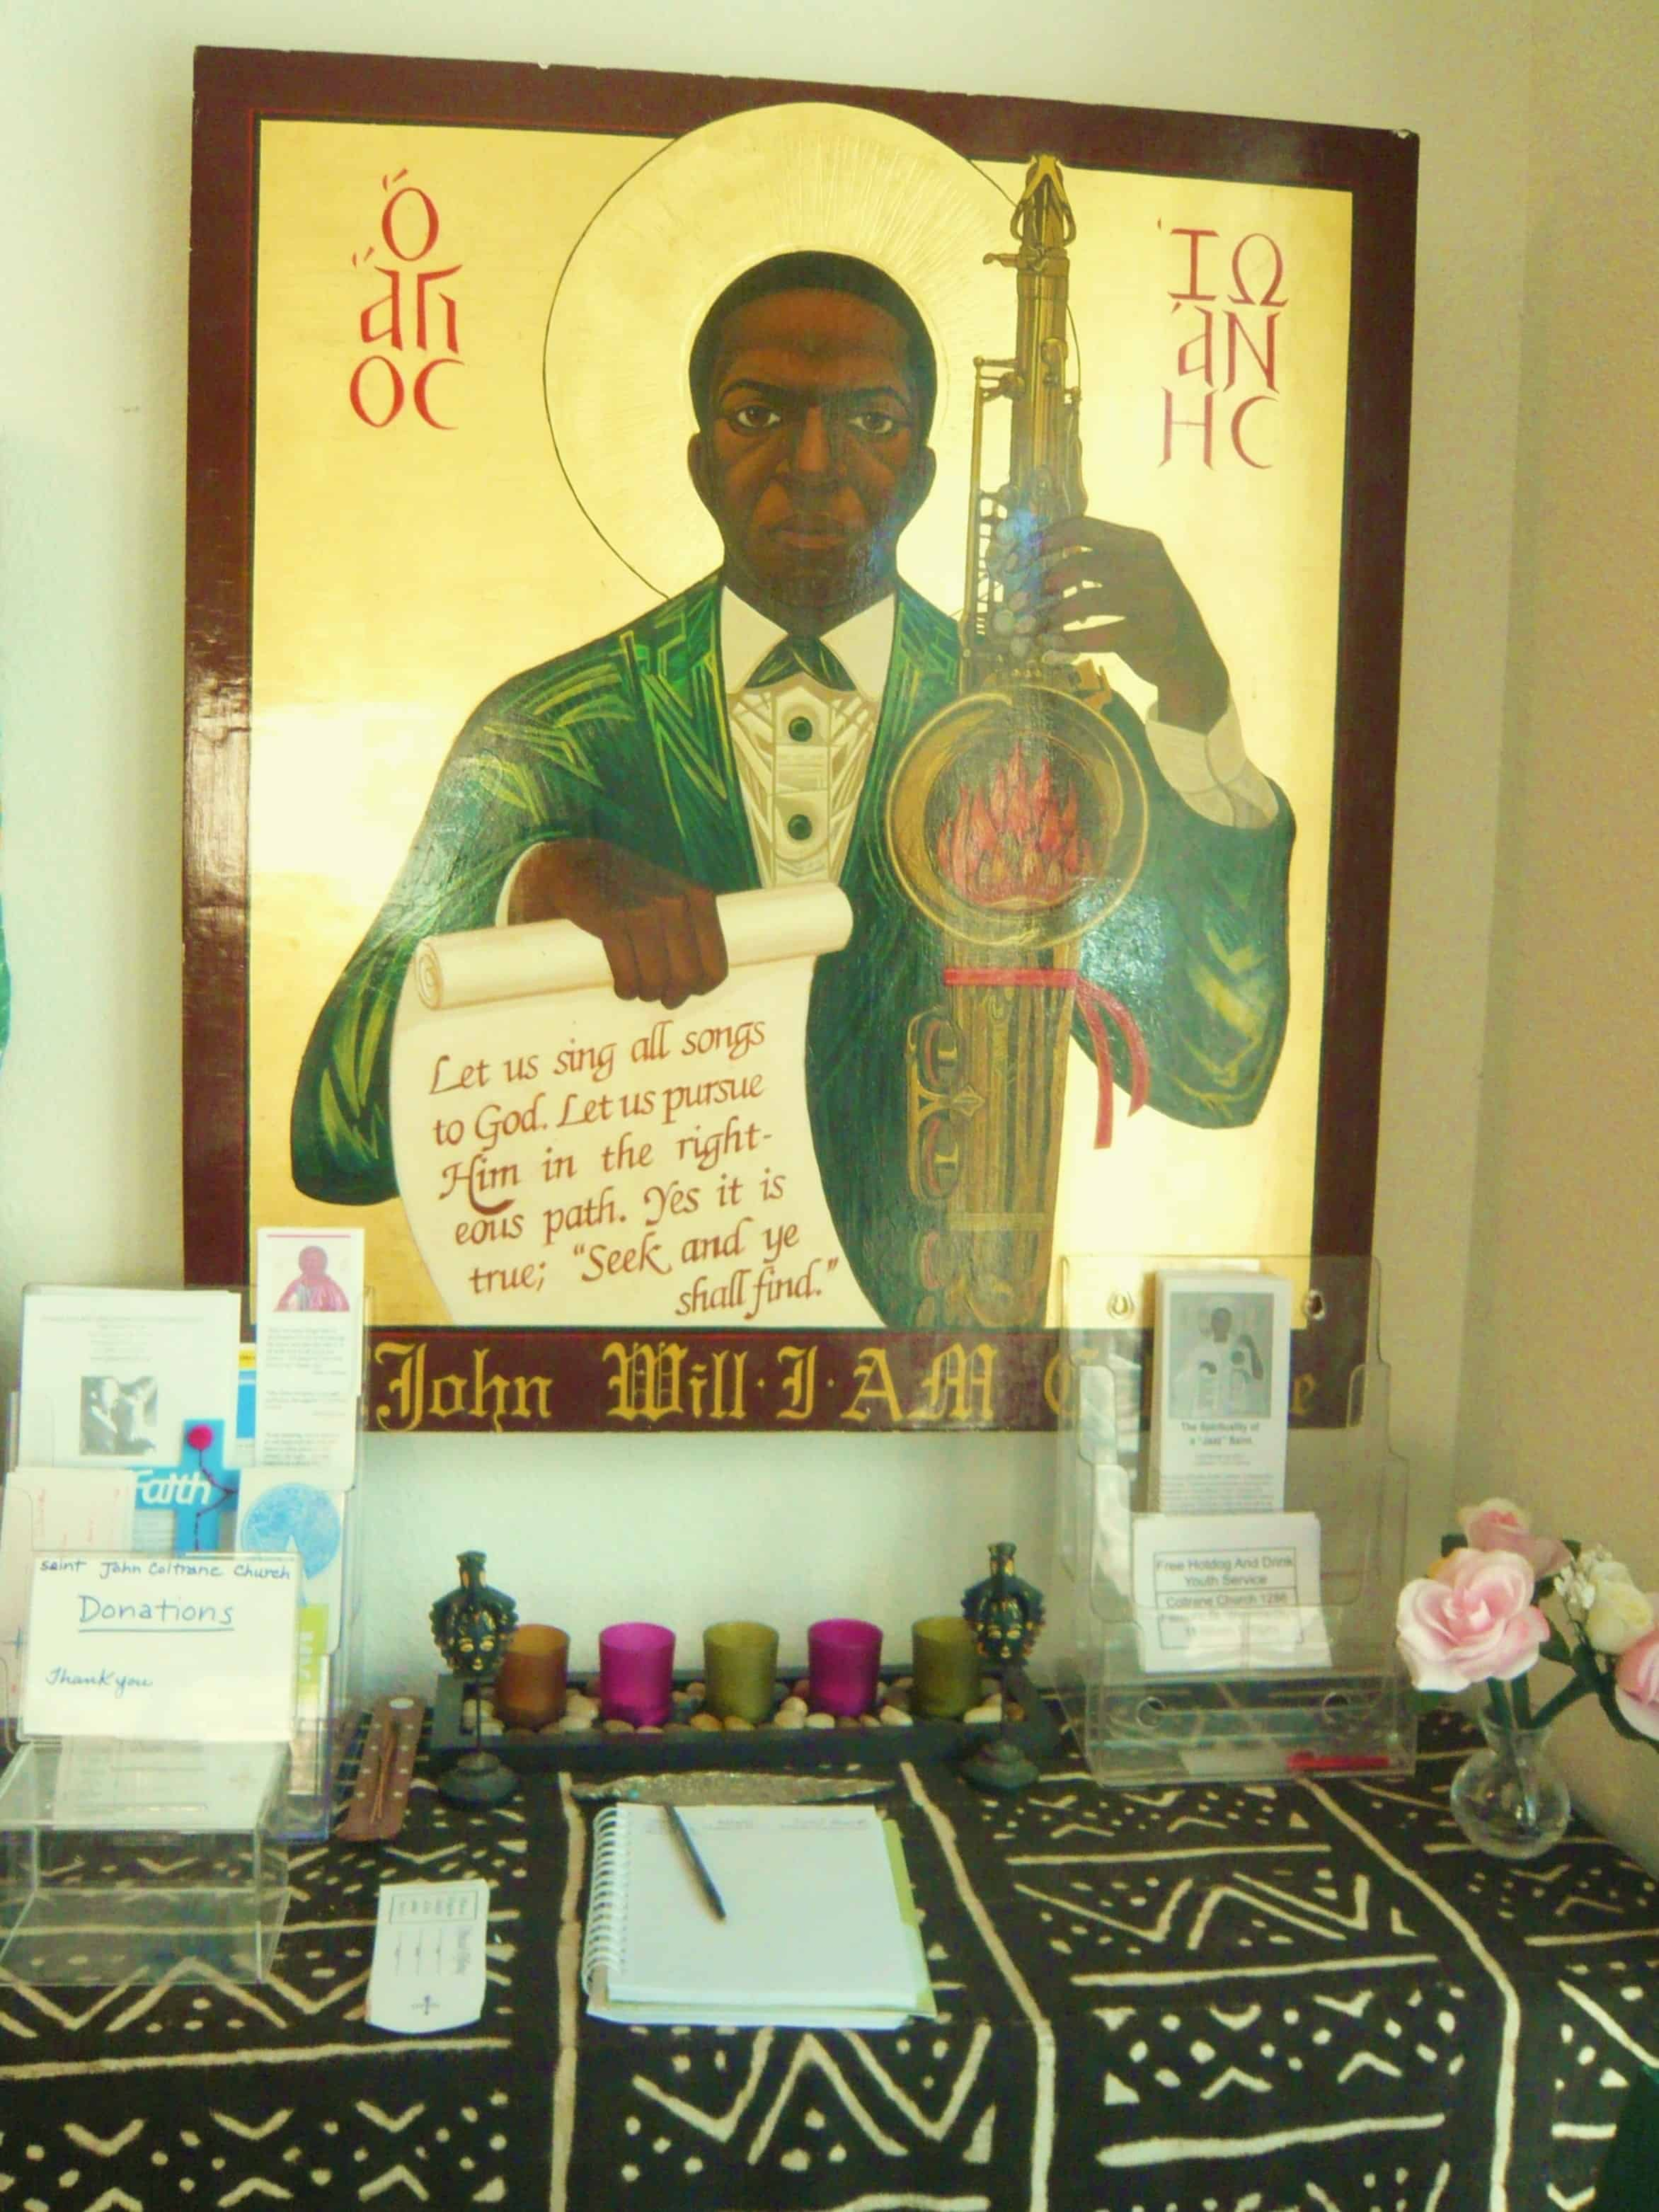 Altar to St John Coltrane, photo by danisabella